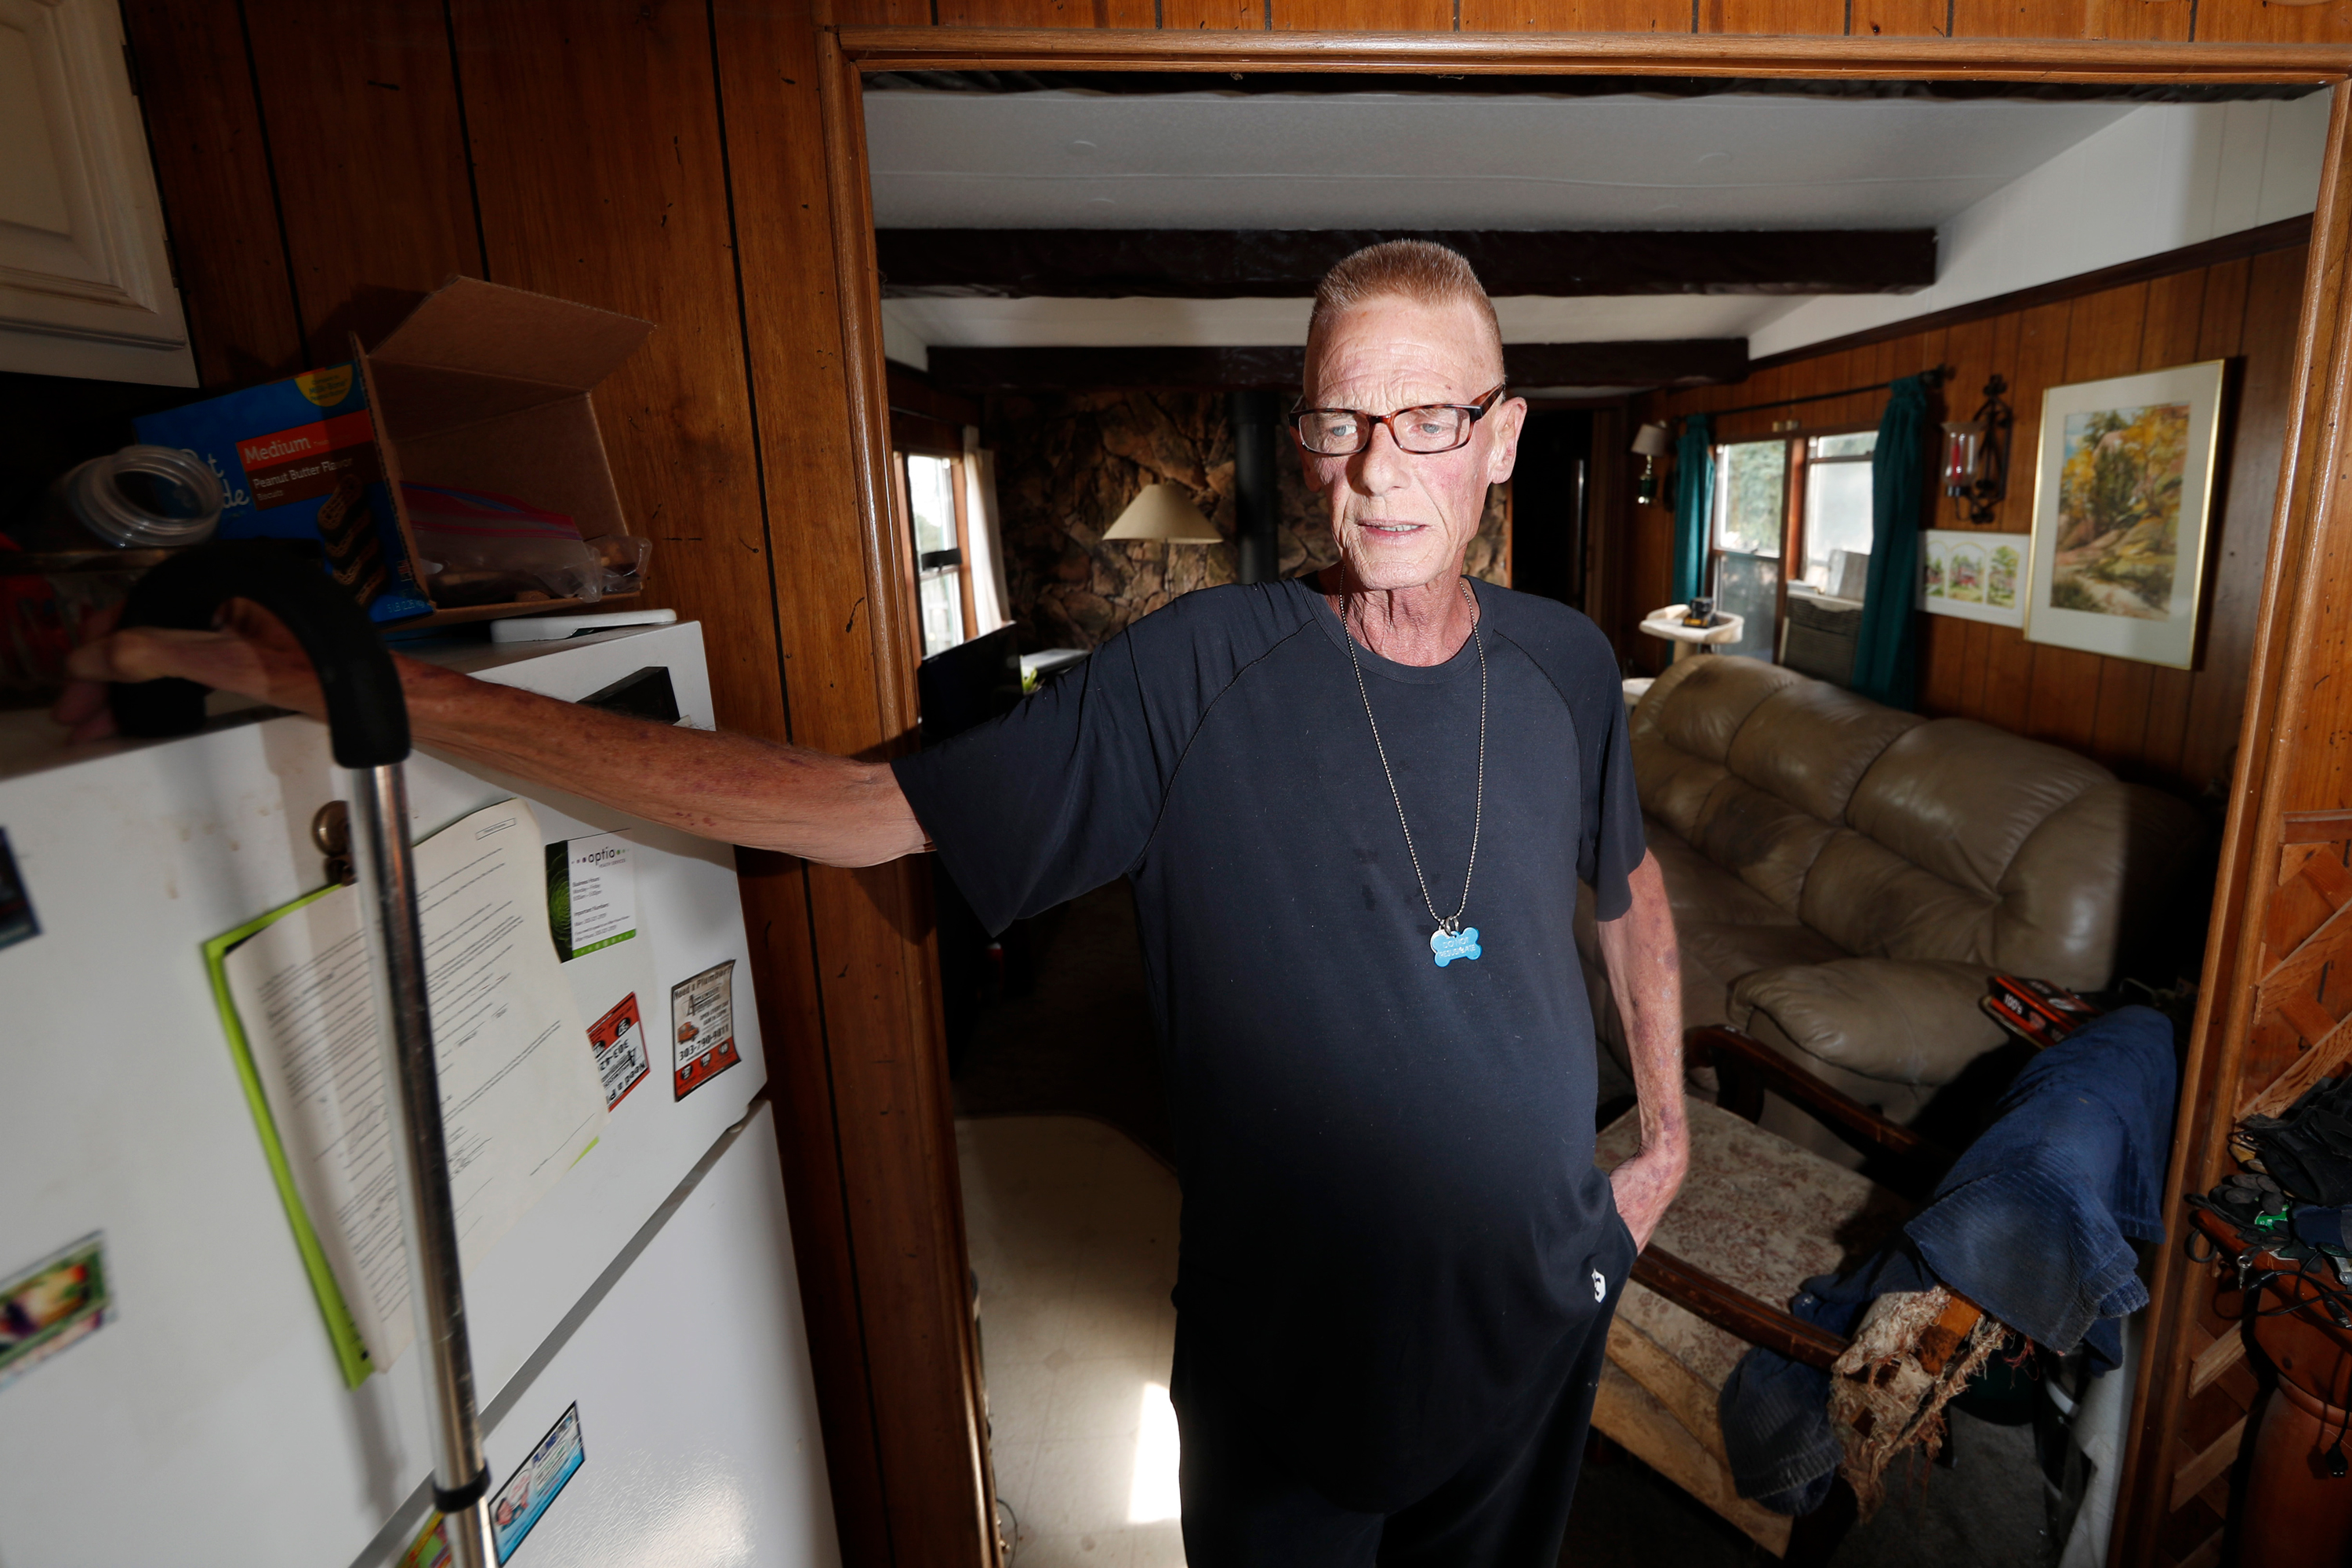 Neil Mahoney is shown inside his trailer home located in a park just below the westbound lanes of Interstate 70 Wednesday, Sept. 4, 2019, in Golden, Colo. Mahoney, who is dying of cancer, has joined forces with his doctor to say that a Colorado hospital's policy barring the doctor from administering life-ending drugs to Mahoney at his home goes against the state's assisted suicide law.